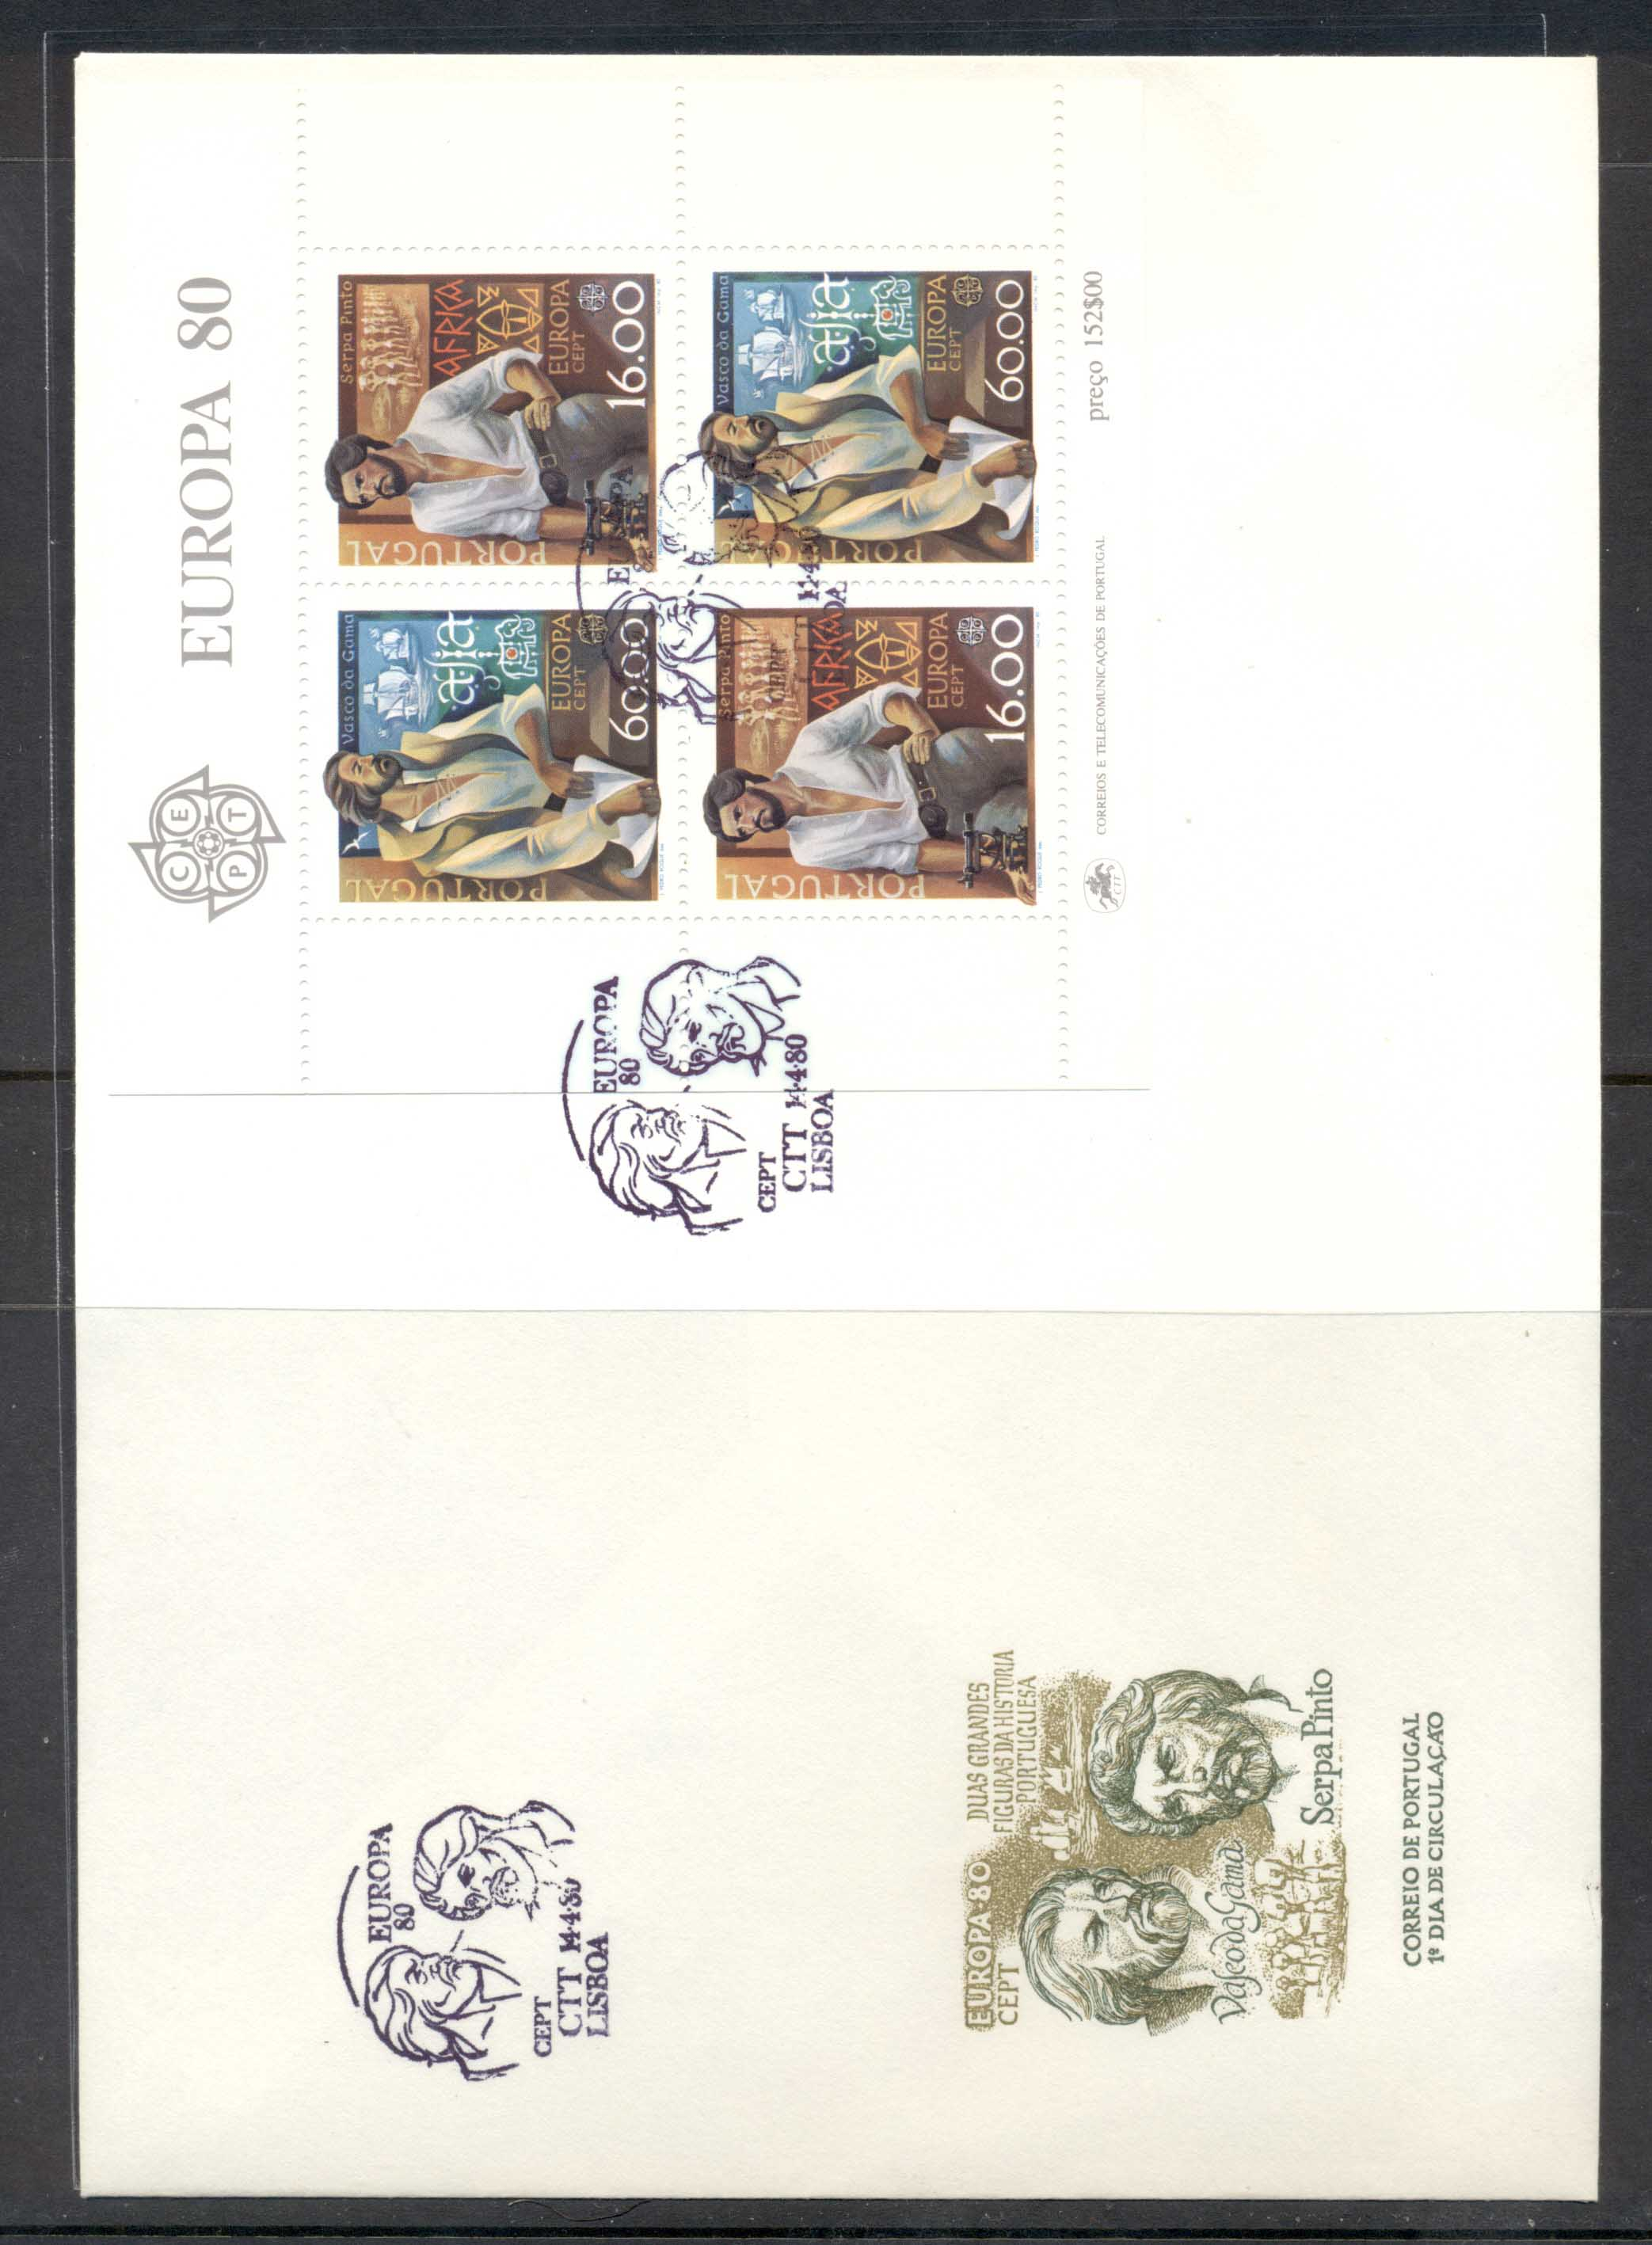 Portugal 1980 Europa Celebrities XLMS FDC